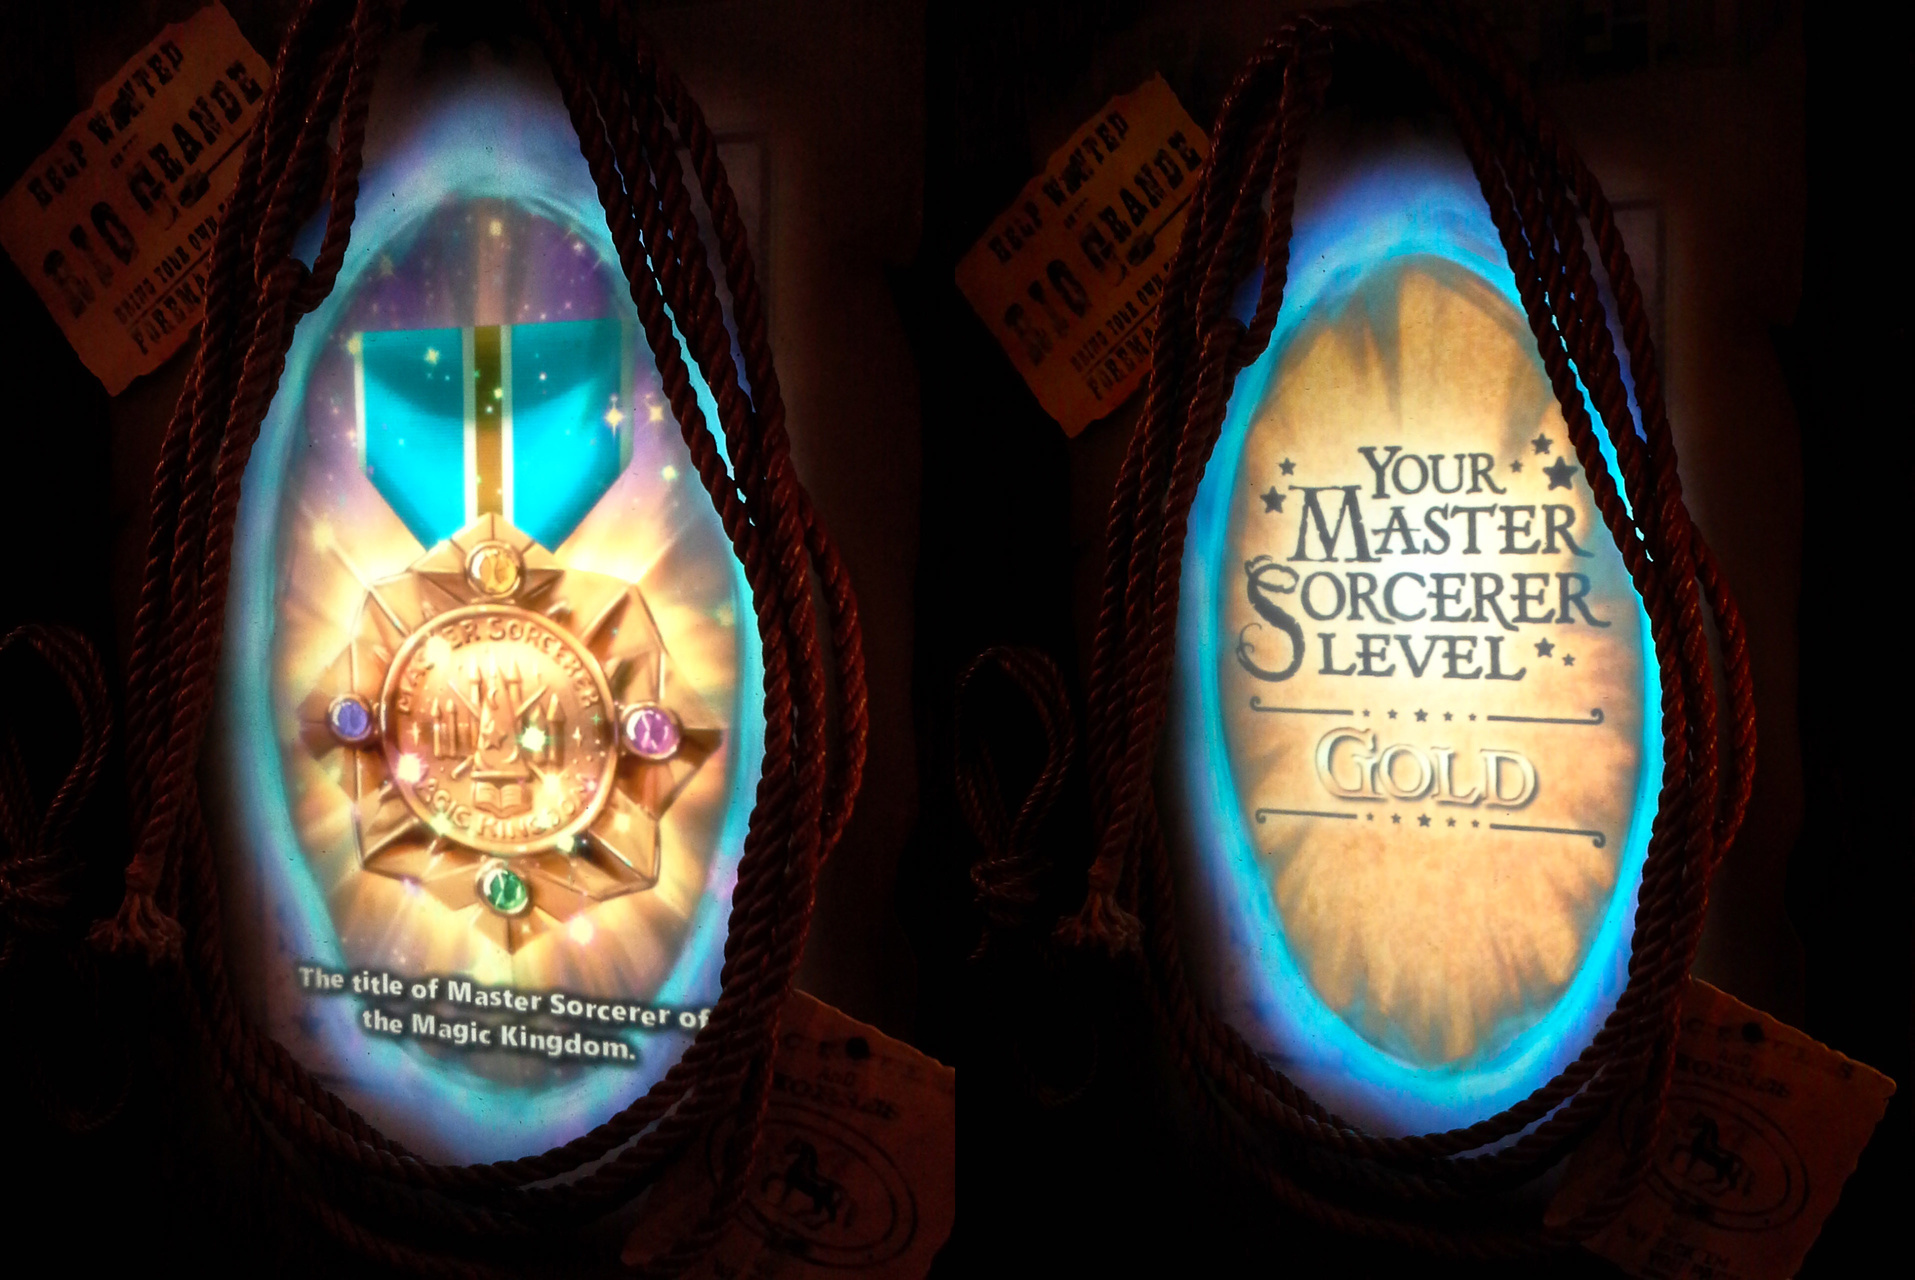 Two oval-shaped portals encircled in bright blue, both placed within two coils of rope that are hanging on a wall. The left-hand portal shows an image of a gold medal on a blue ribbon, studded with four round gems - yellow, pink, green and blue-purple. The text underneath reads, 'The title of Master Sorceror of the Magic Kingdom'. The right-hand portal has a golden background, with black text reading, 'Your Master Sorceror Level', and then the word GOLD below in gold lettering.